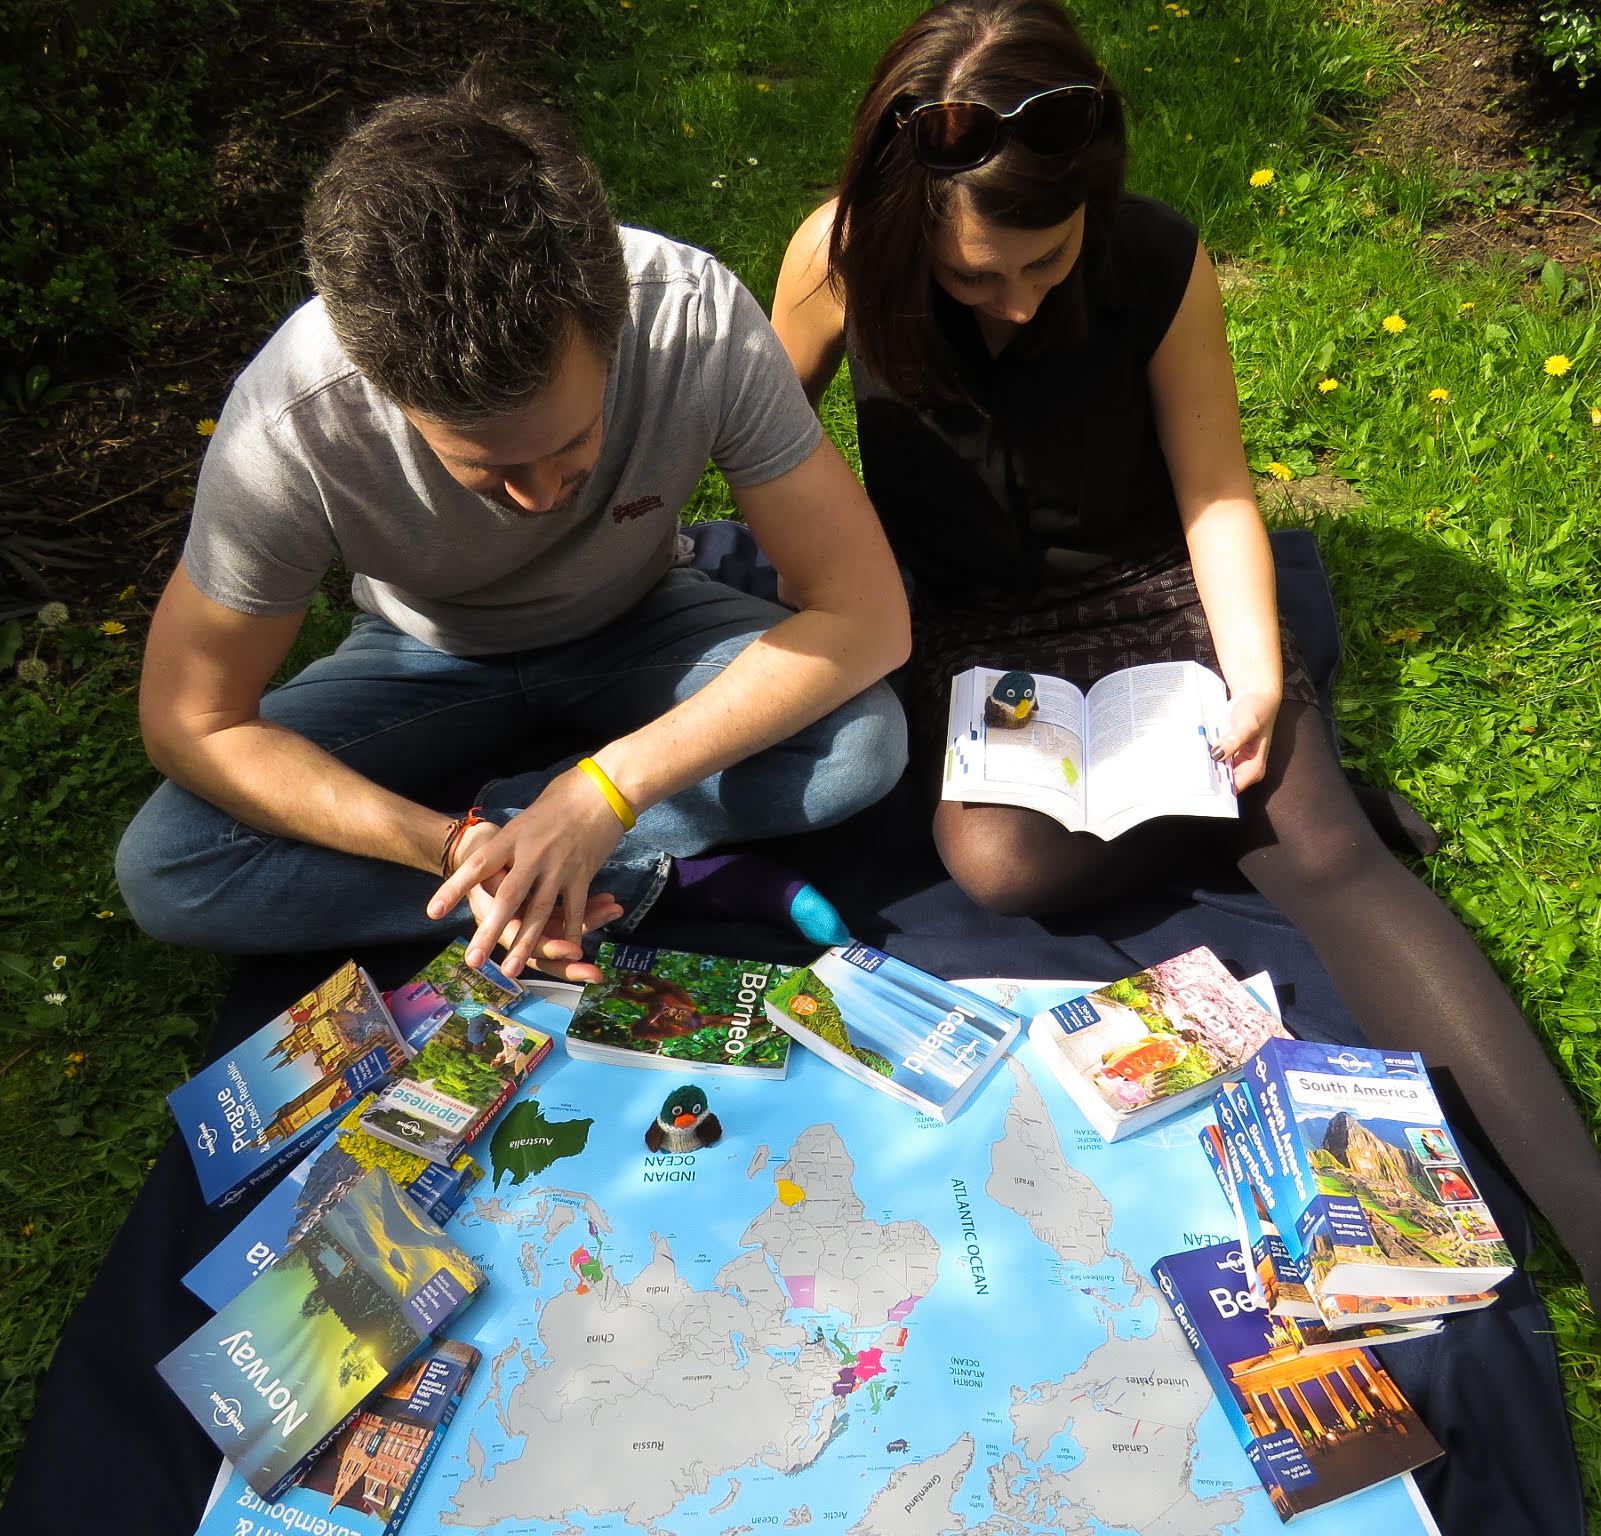 Tommy and Mary Duck have been travelling the world with help from Lonely Planet's guides. Image: Dulverton Ducks